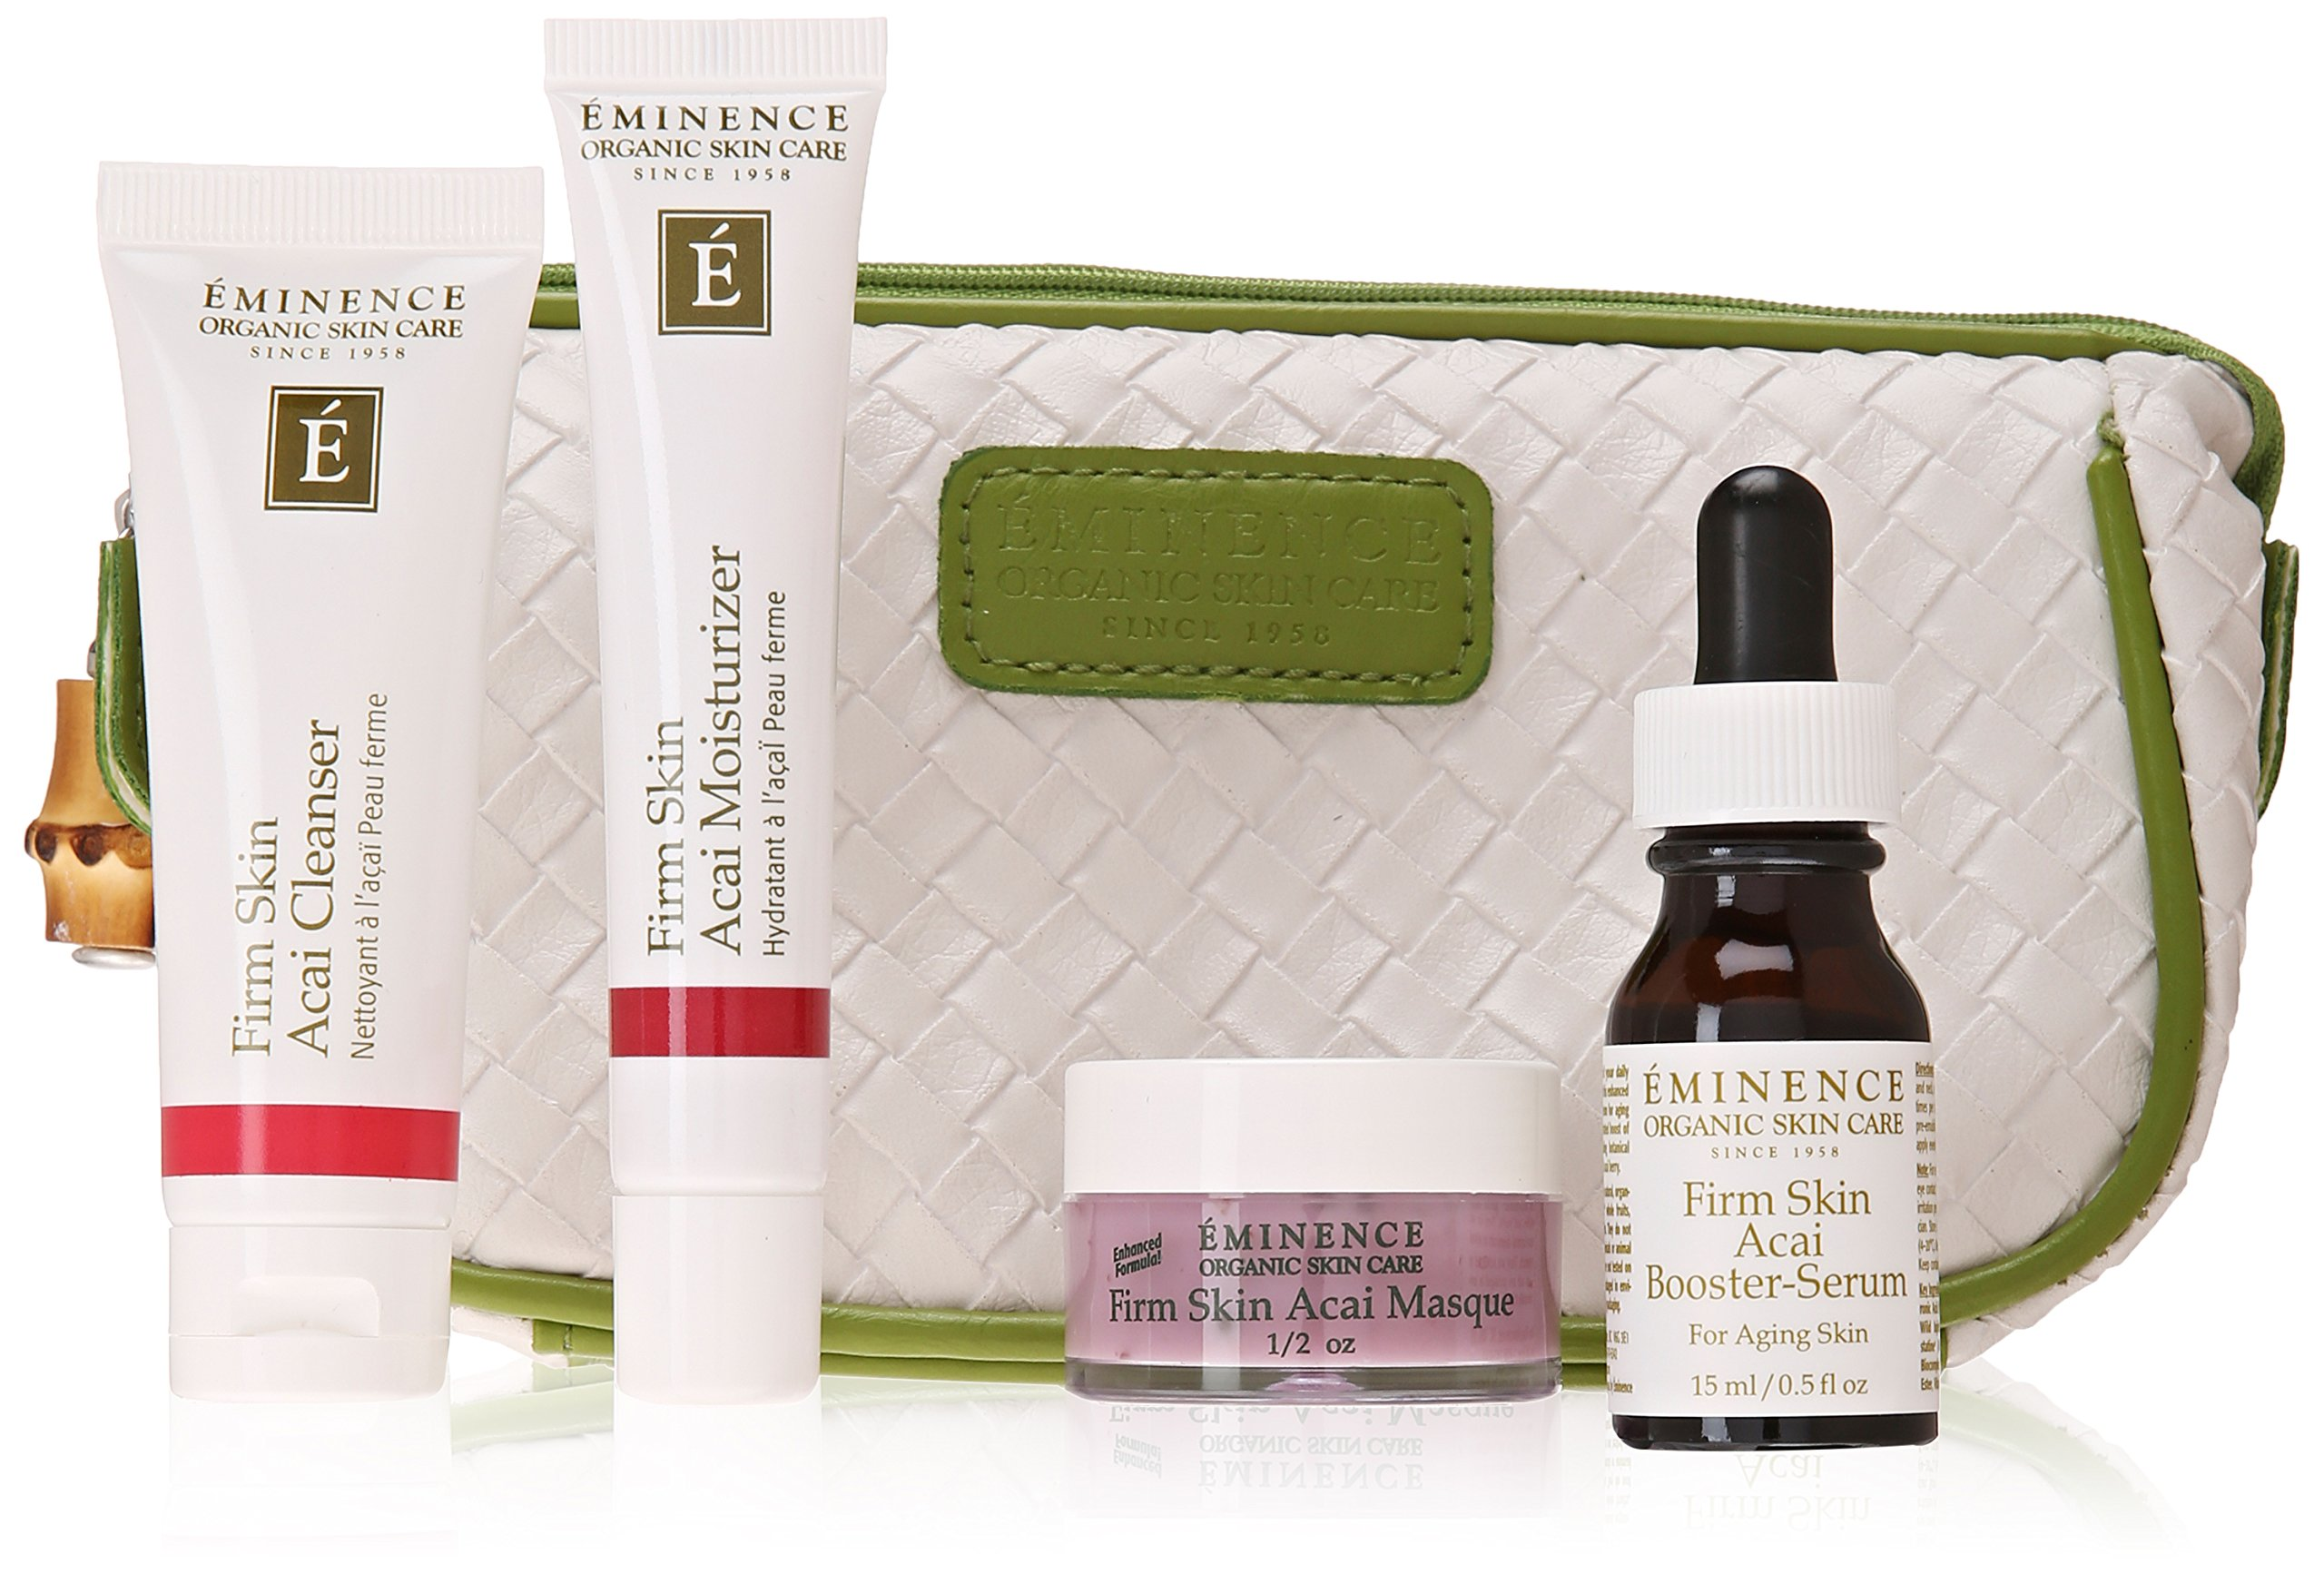 Eminence Organic Skin Care Facial Skin Care Kit (EM919T) Cleansing Block Purifying Perfecting Toner 13.4oz